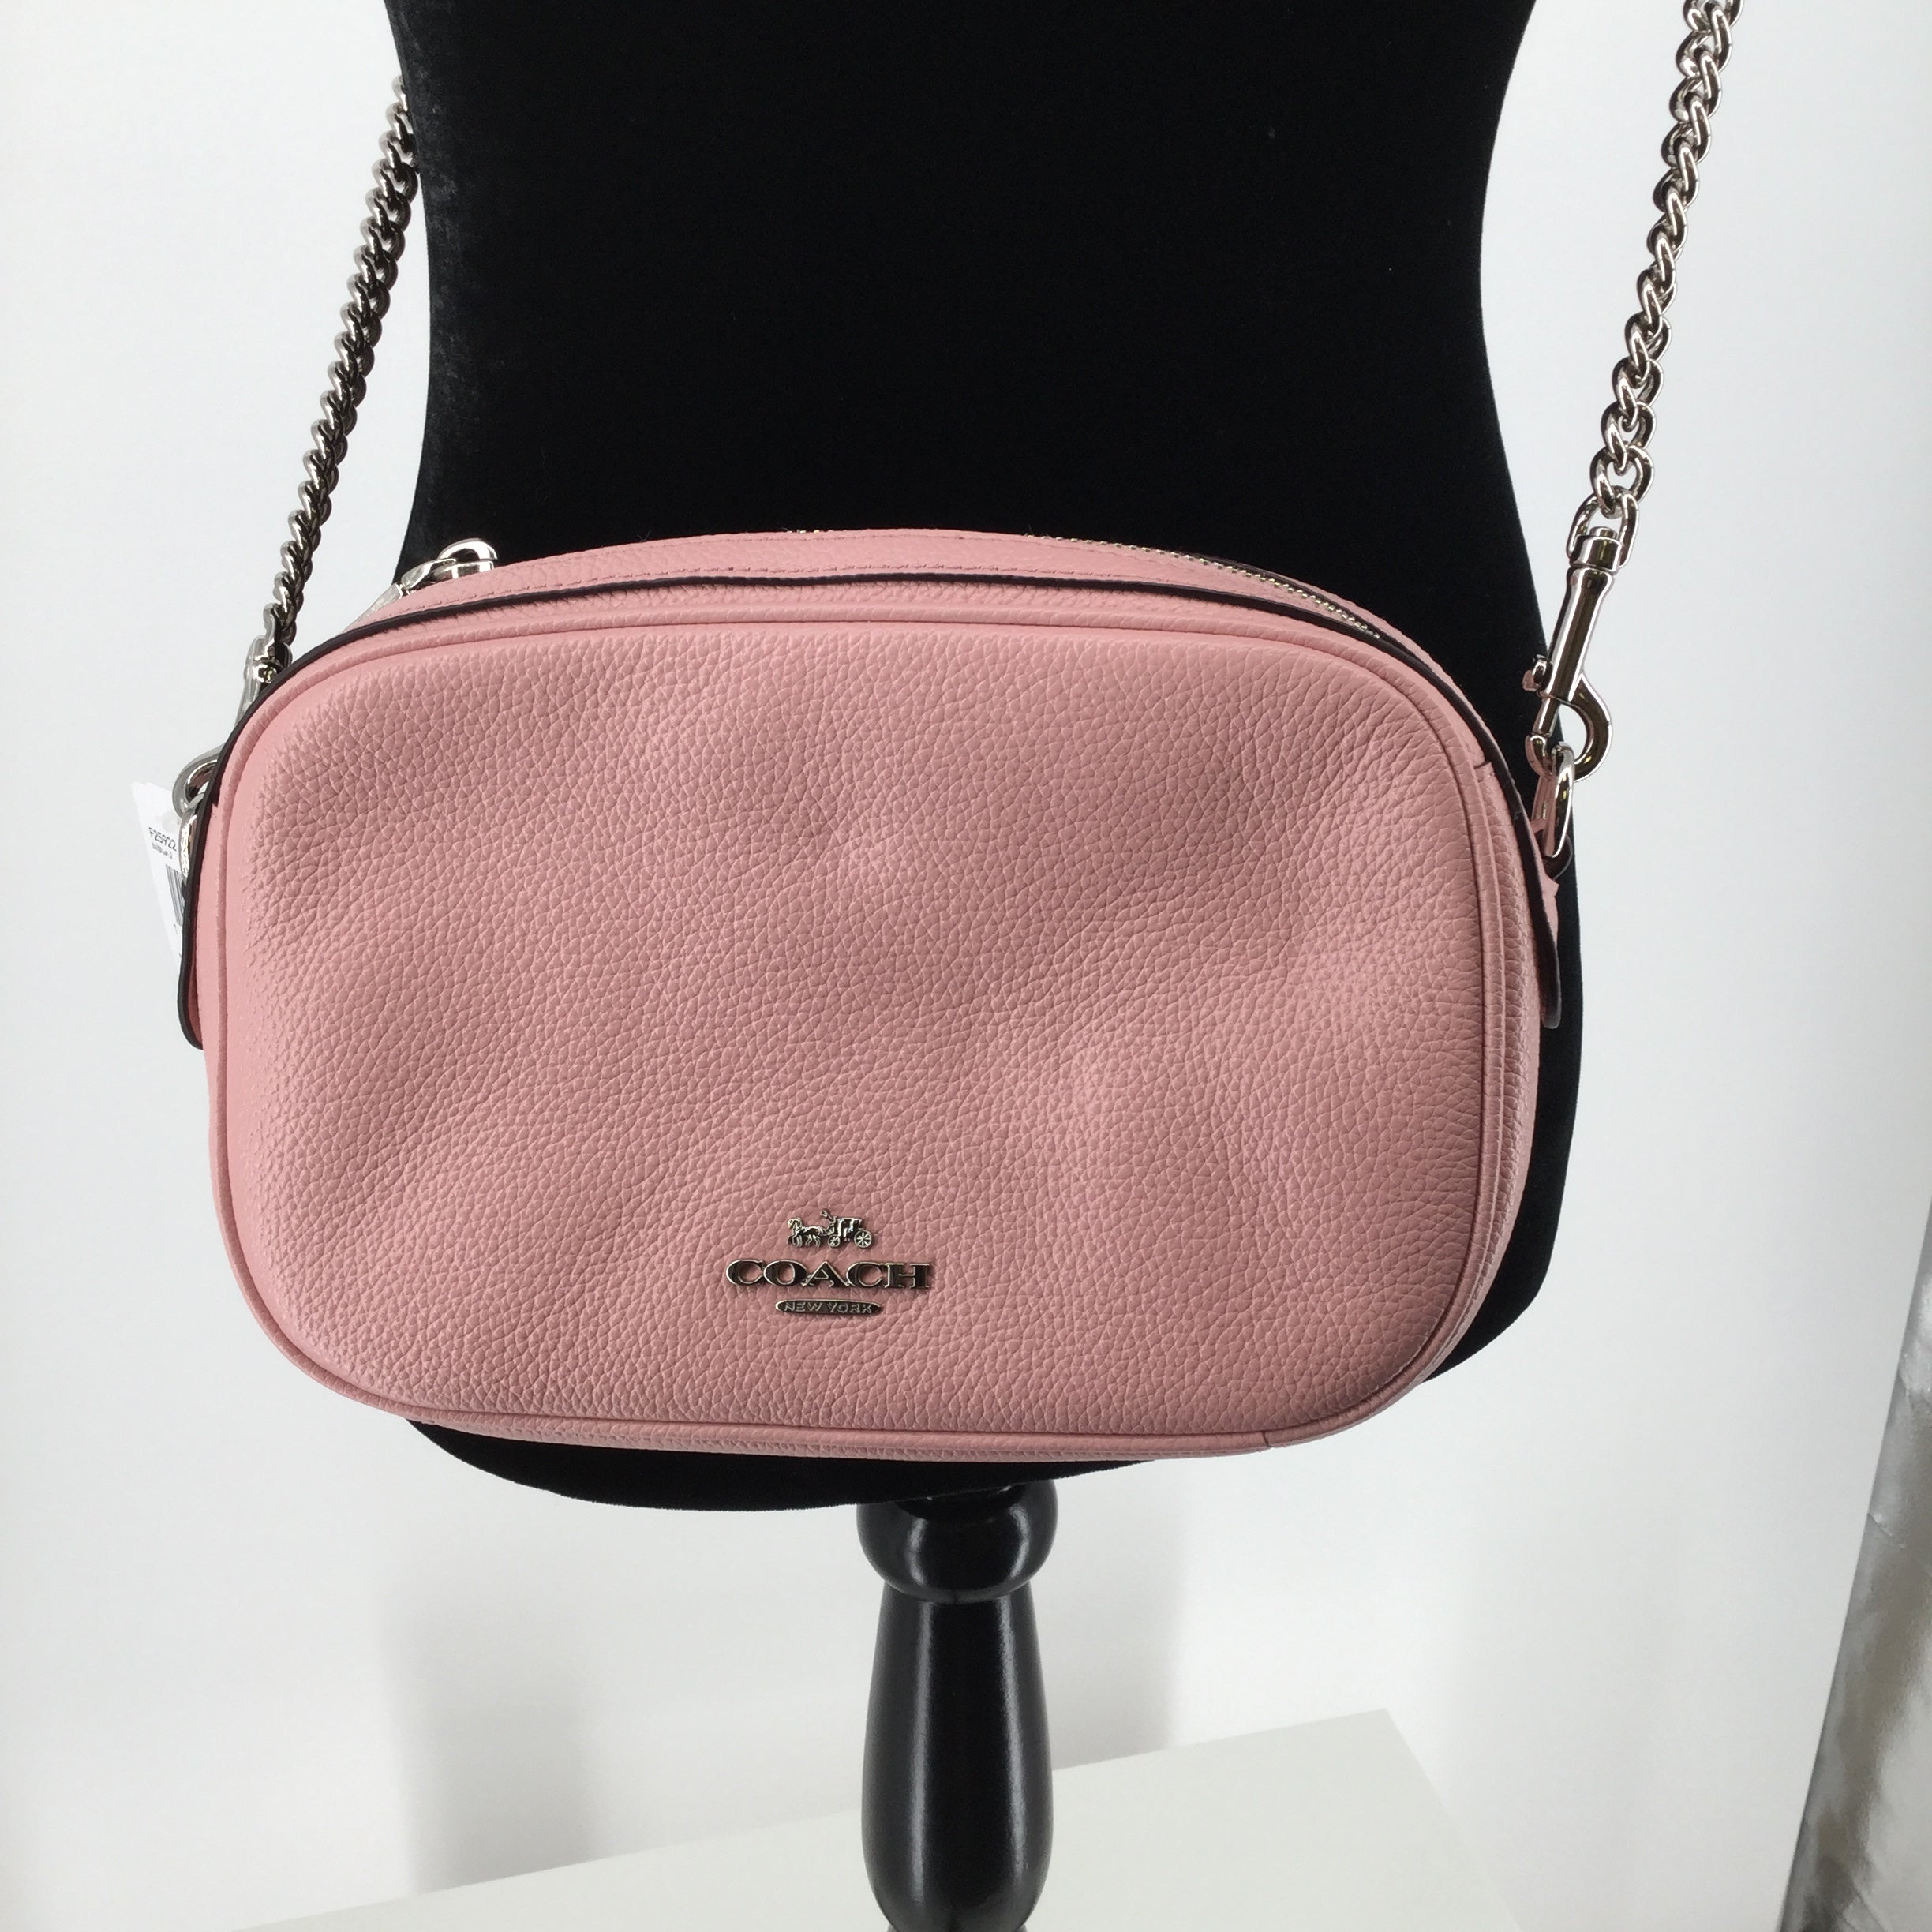 ACCESSORIES,PURSES AND HANDBAGS - LIGHT PINK